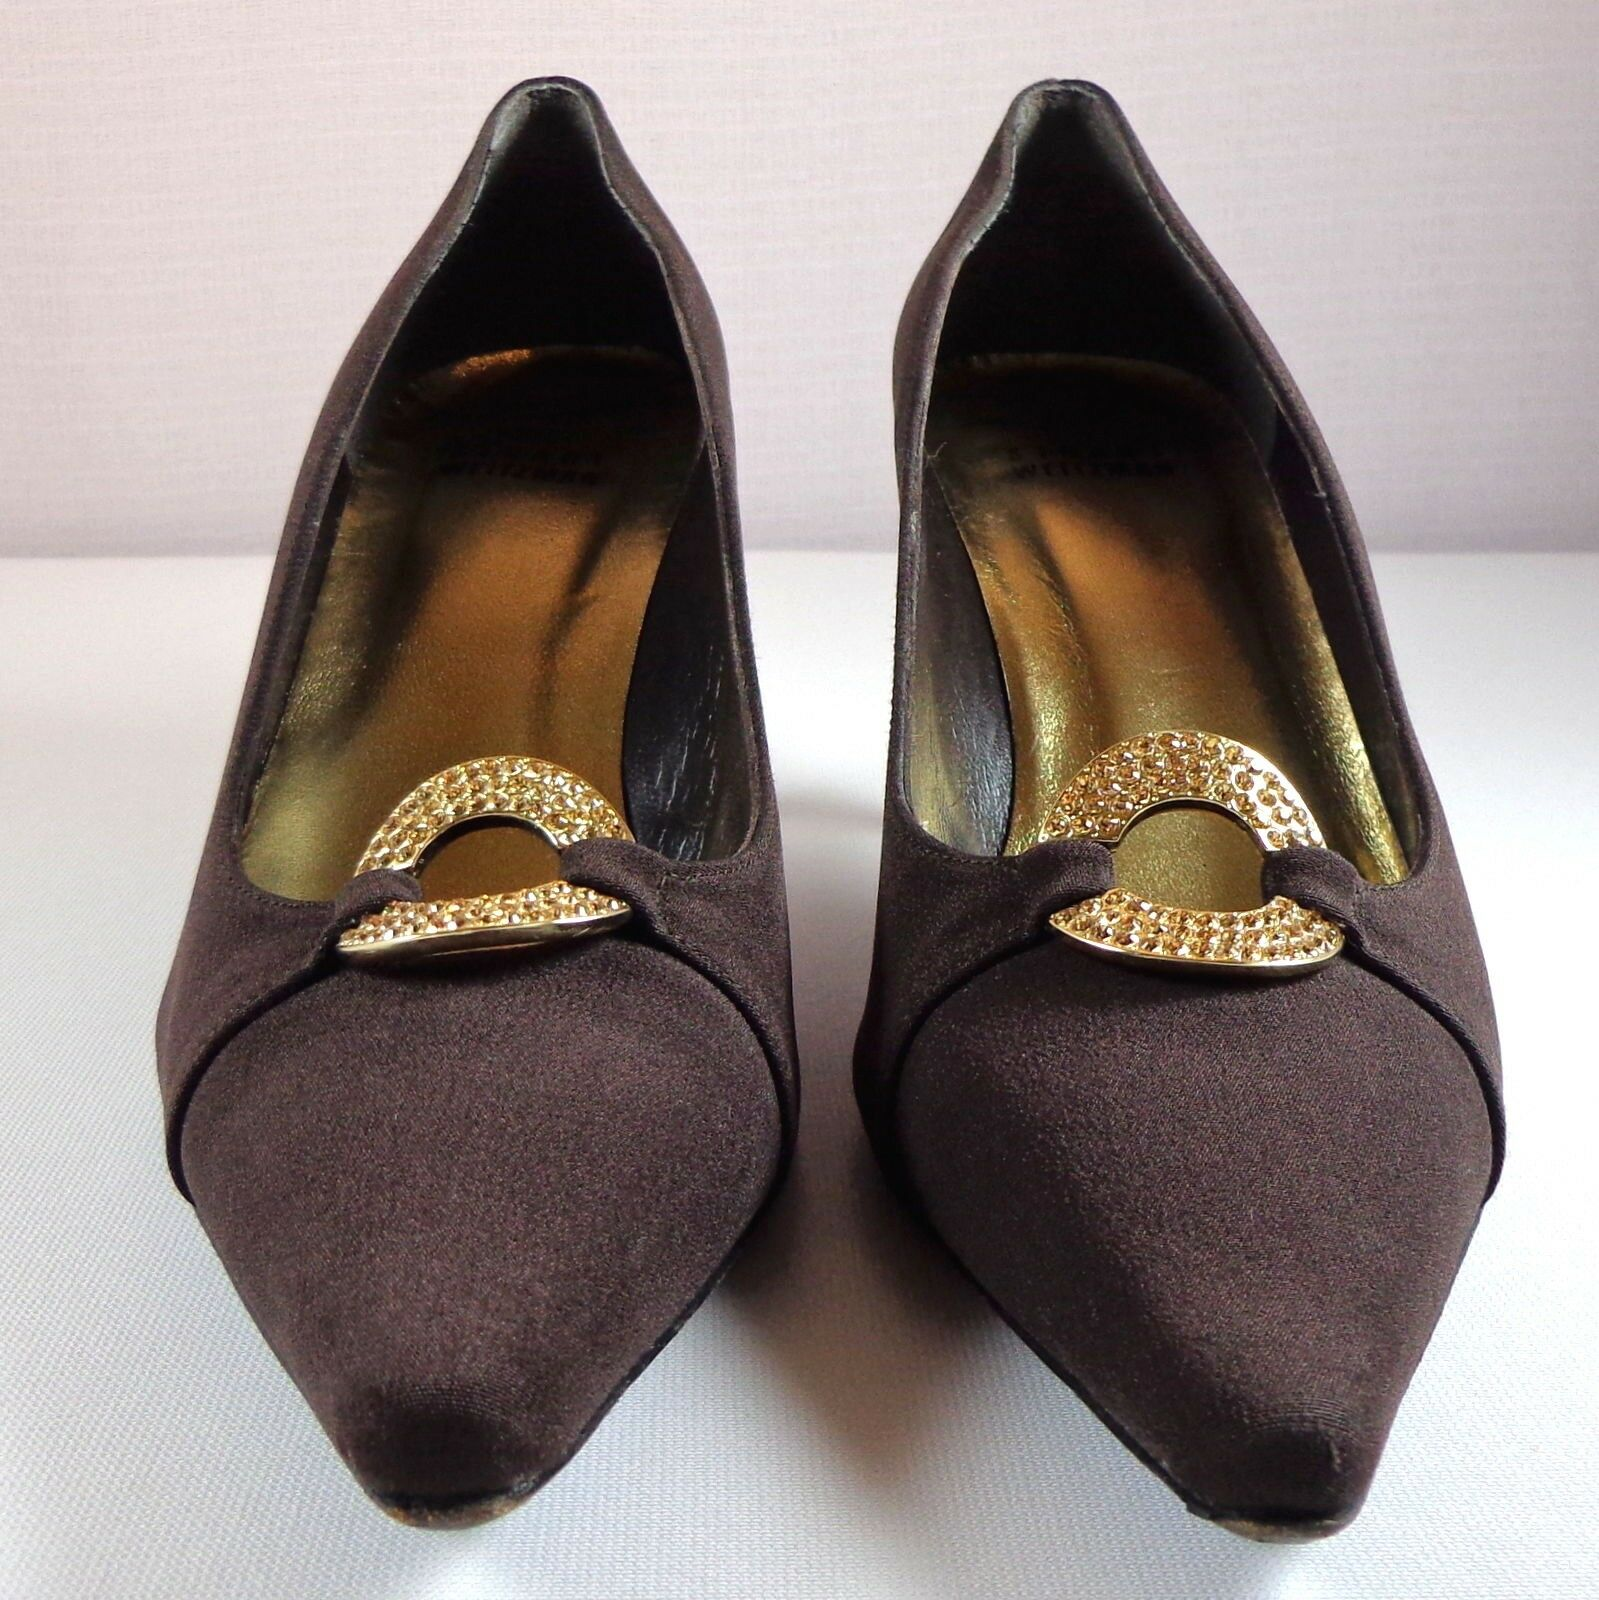 Stuart Weitzman Womens Brown Pumps 7.5 M shoes Jeweled Round Embellishment